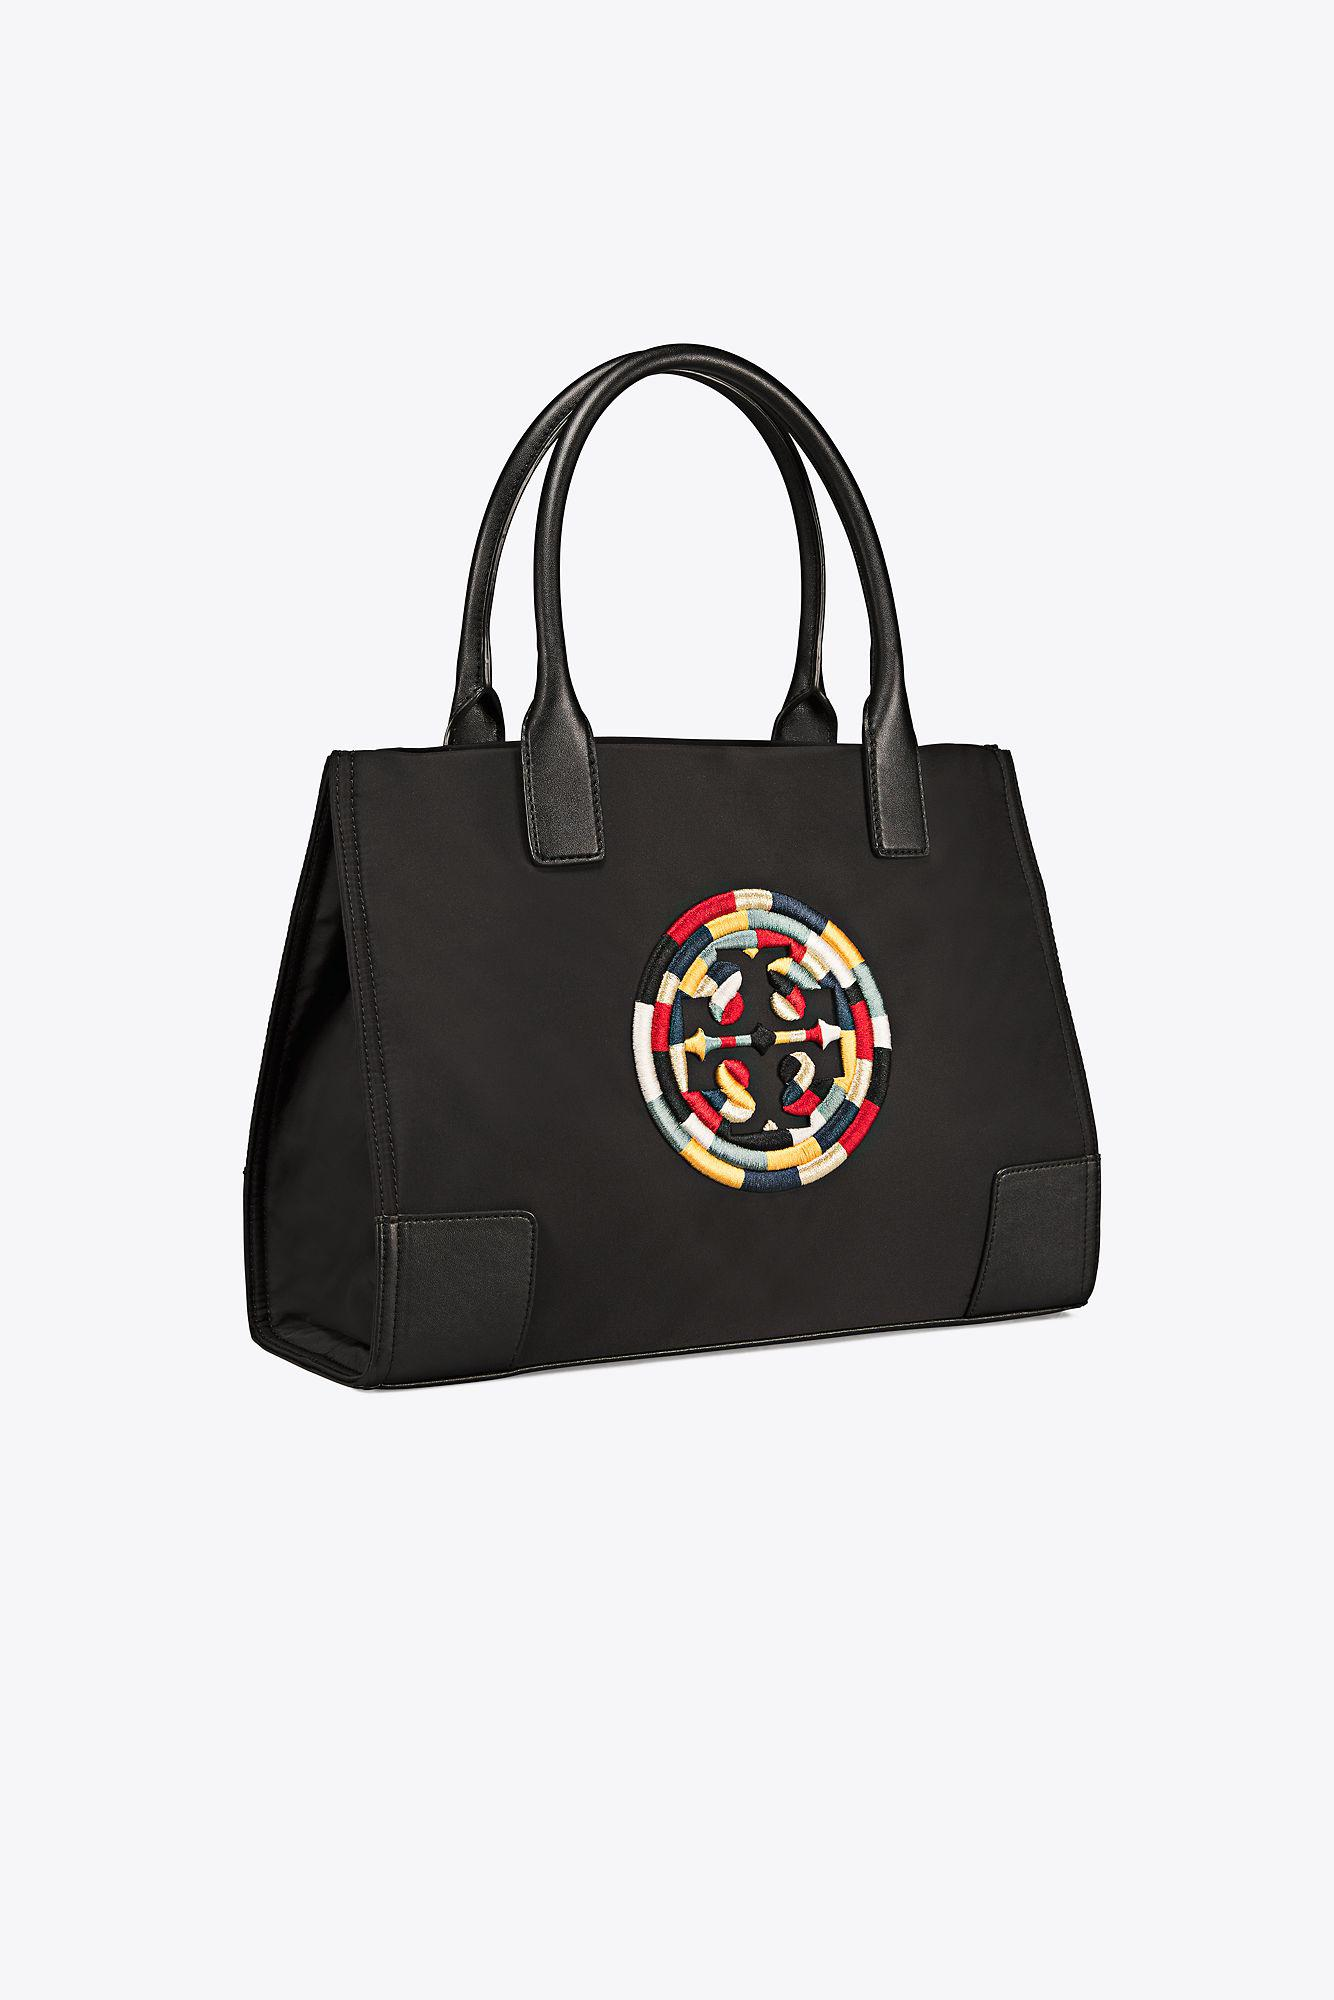 6866a082dc15 Lyst - Tory Burch Ella Embroidered Mini Tote in Black